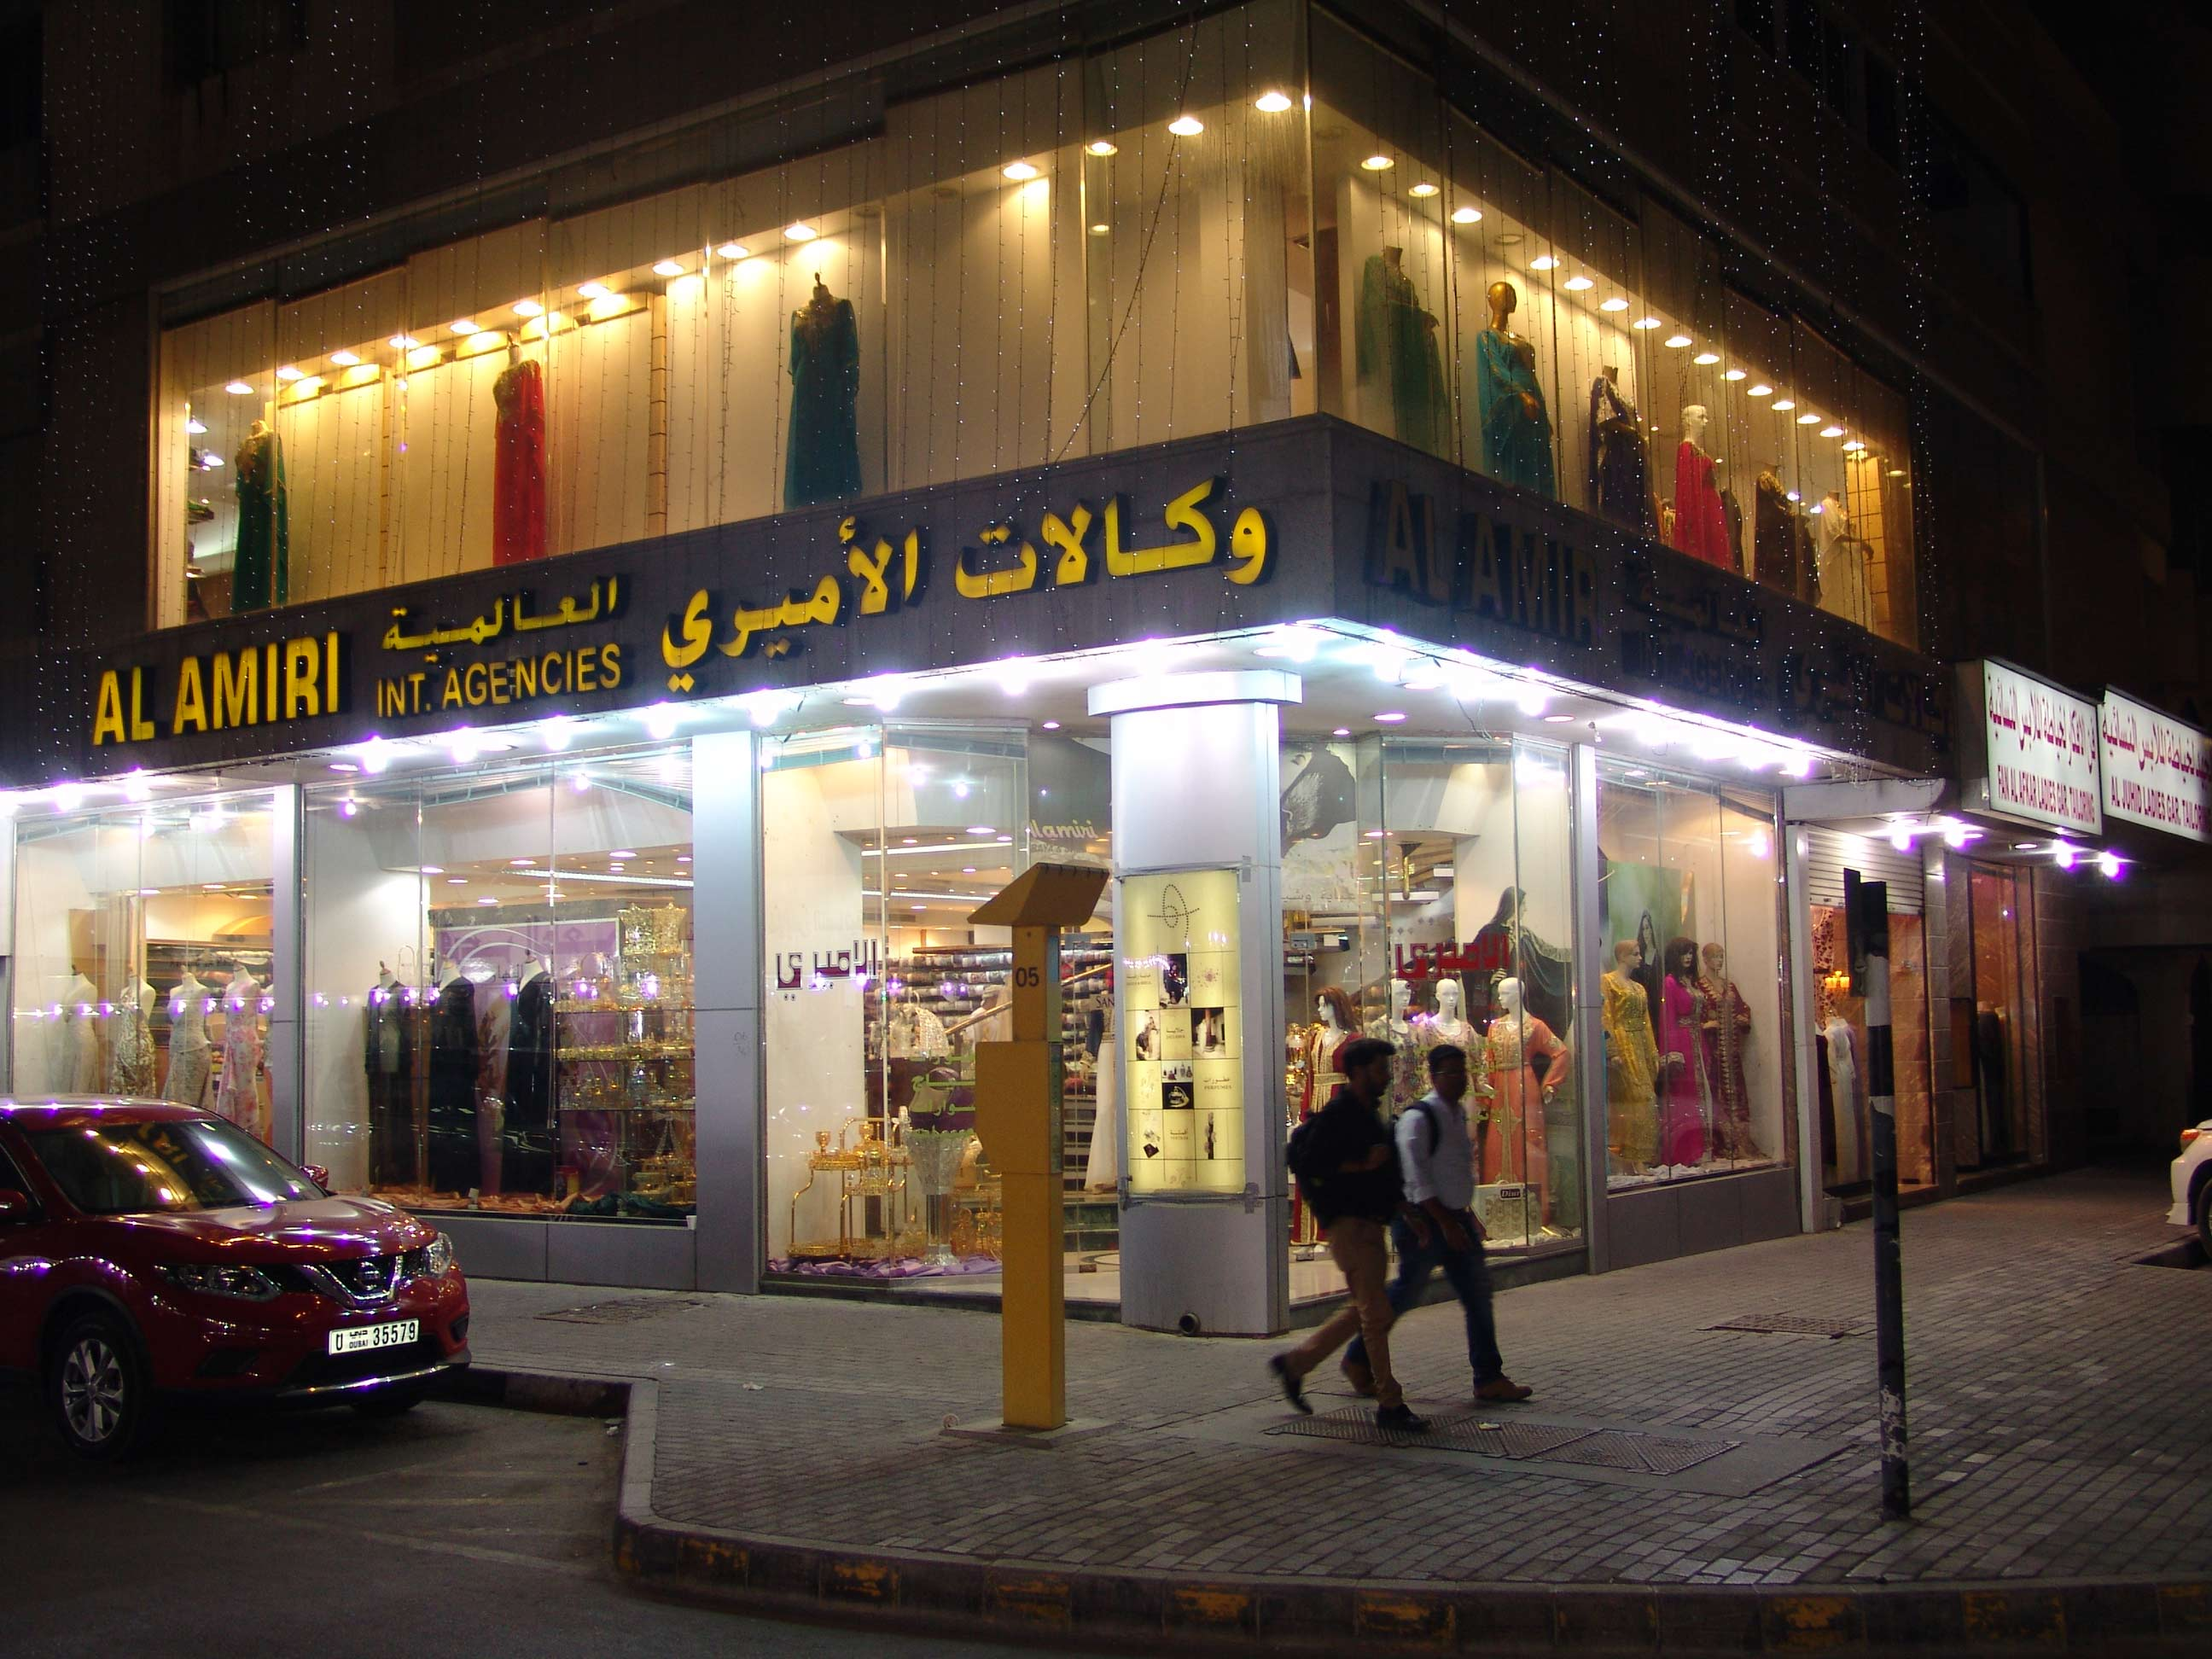 Al Amiri International Agencies (moroccan Fashion) - DSC01298.jpg